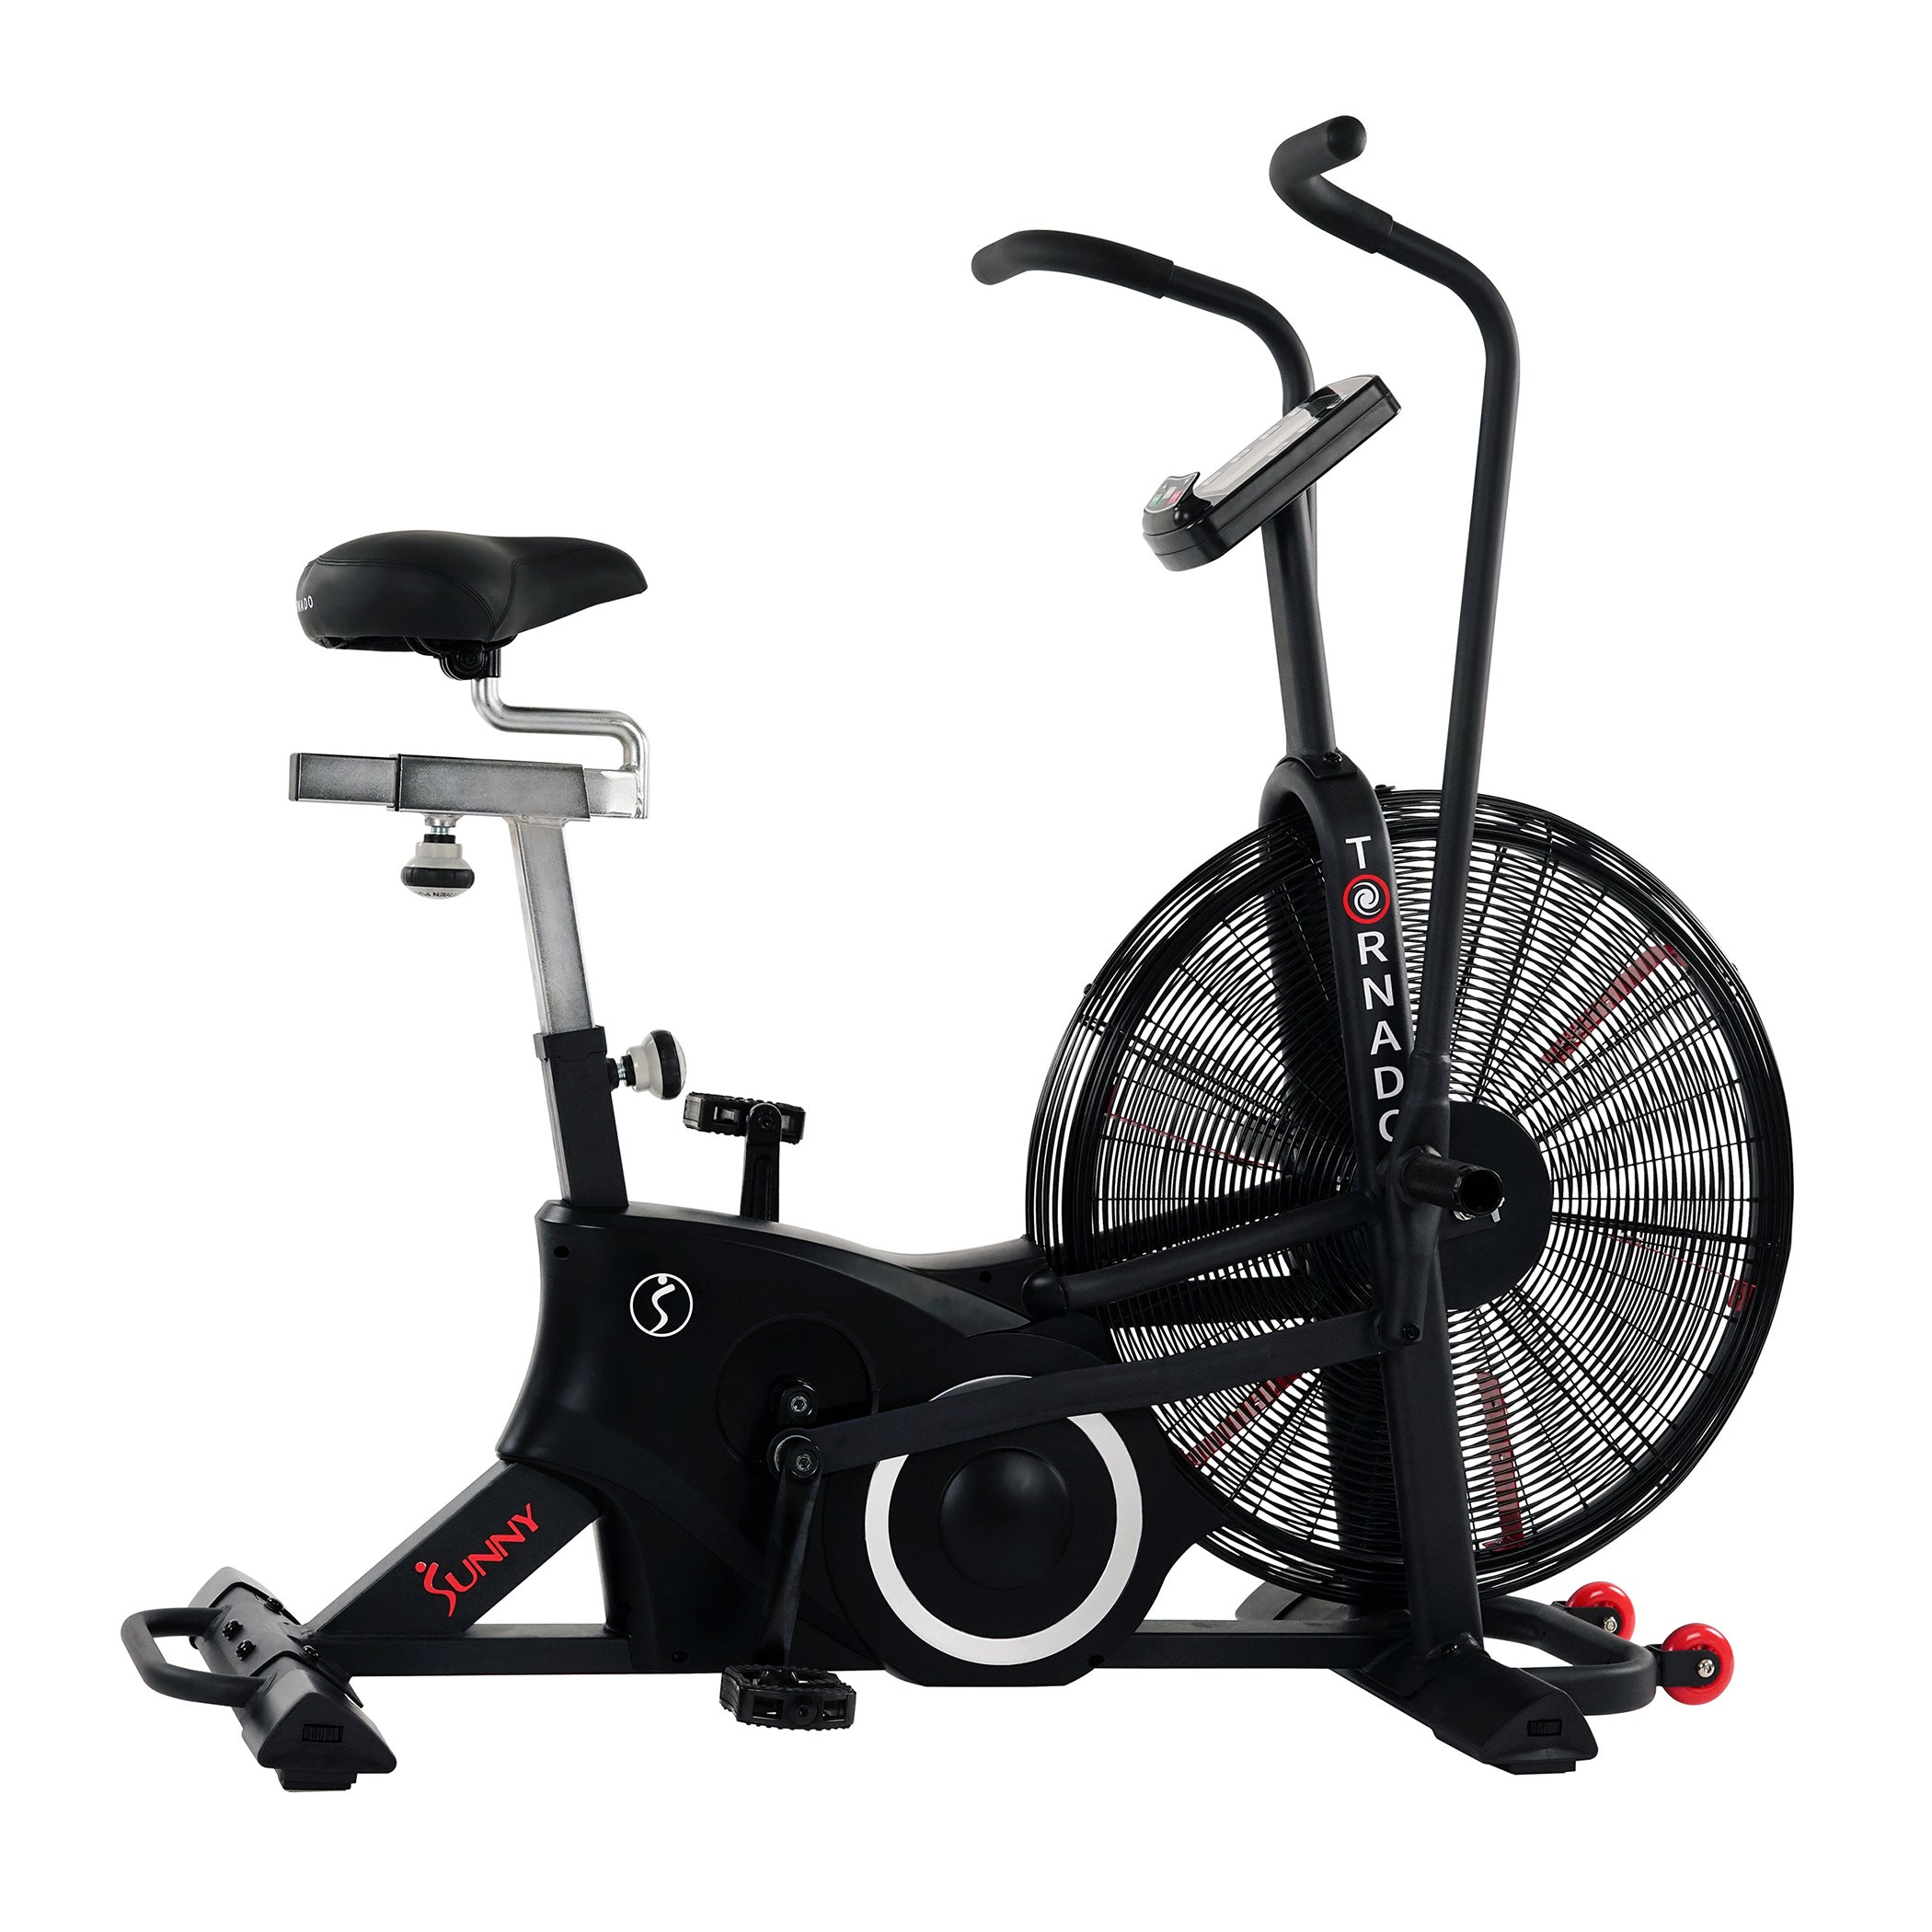 sunny-health-fitness-bikes-exercise-fan-bike-bluetooth-heart-rate-compatibility-tornado-LX-SF-B2729-01